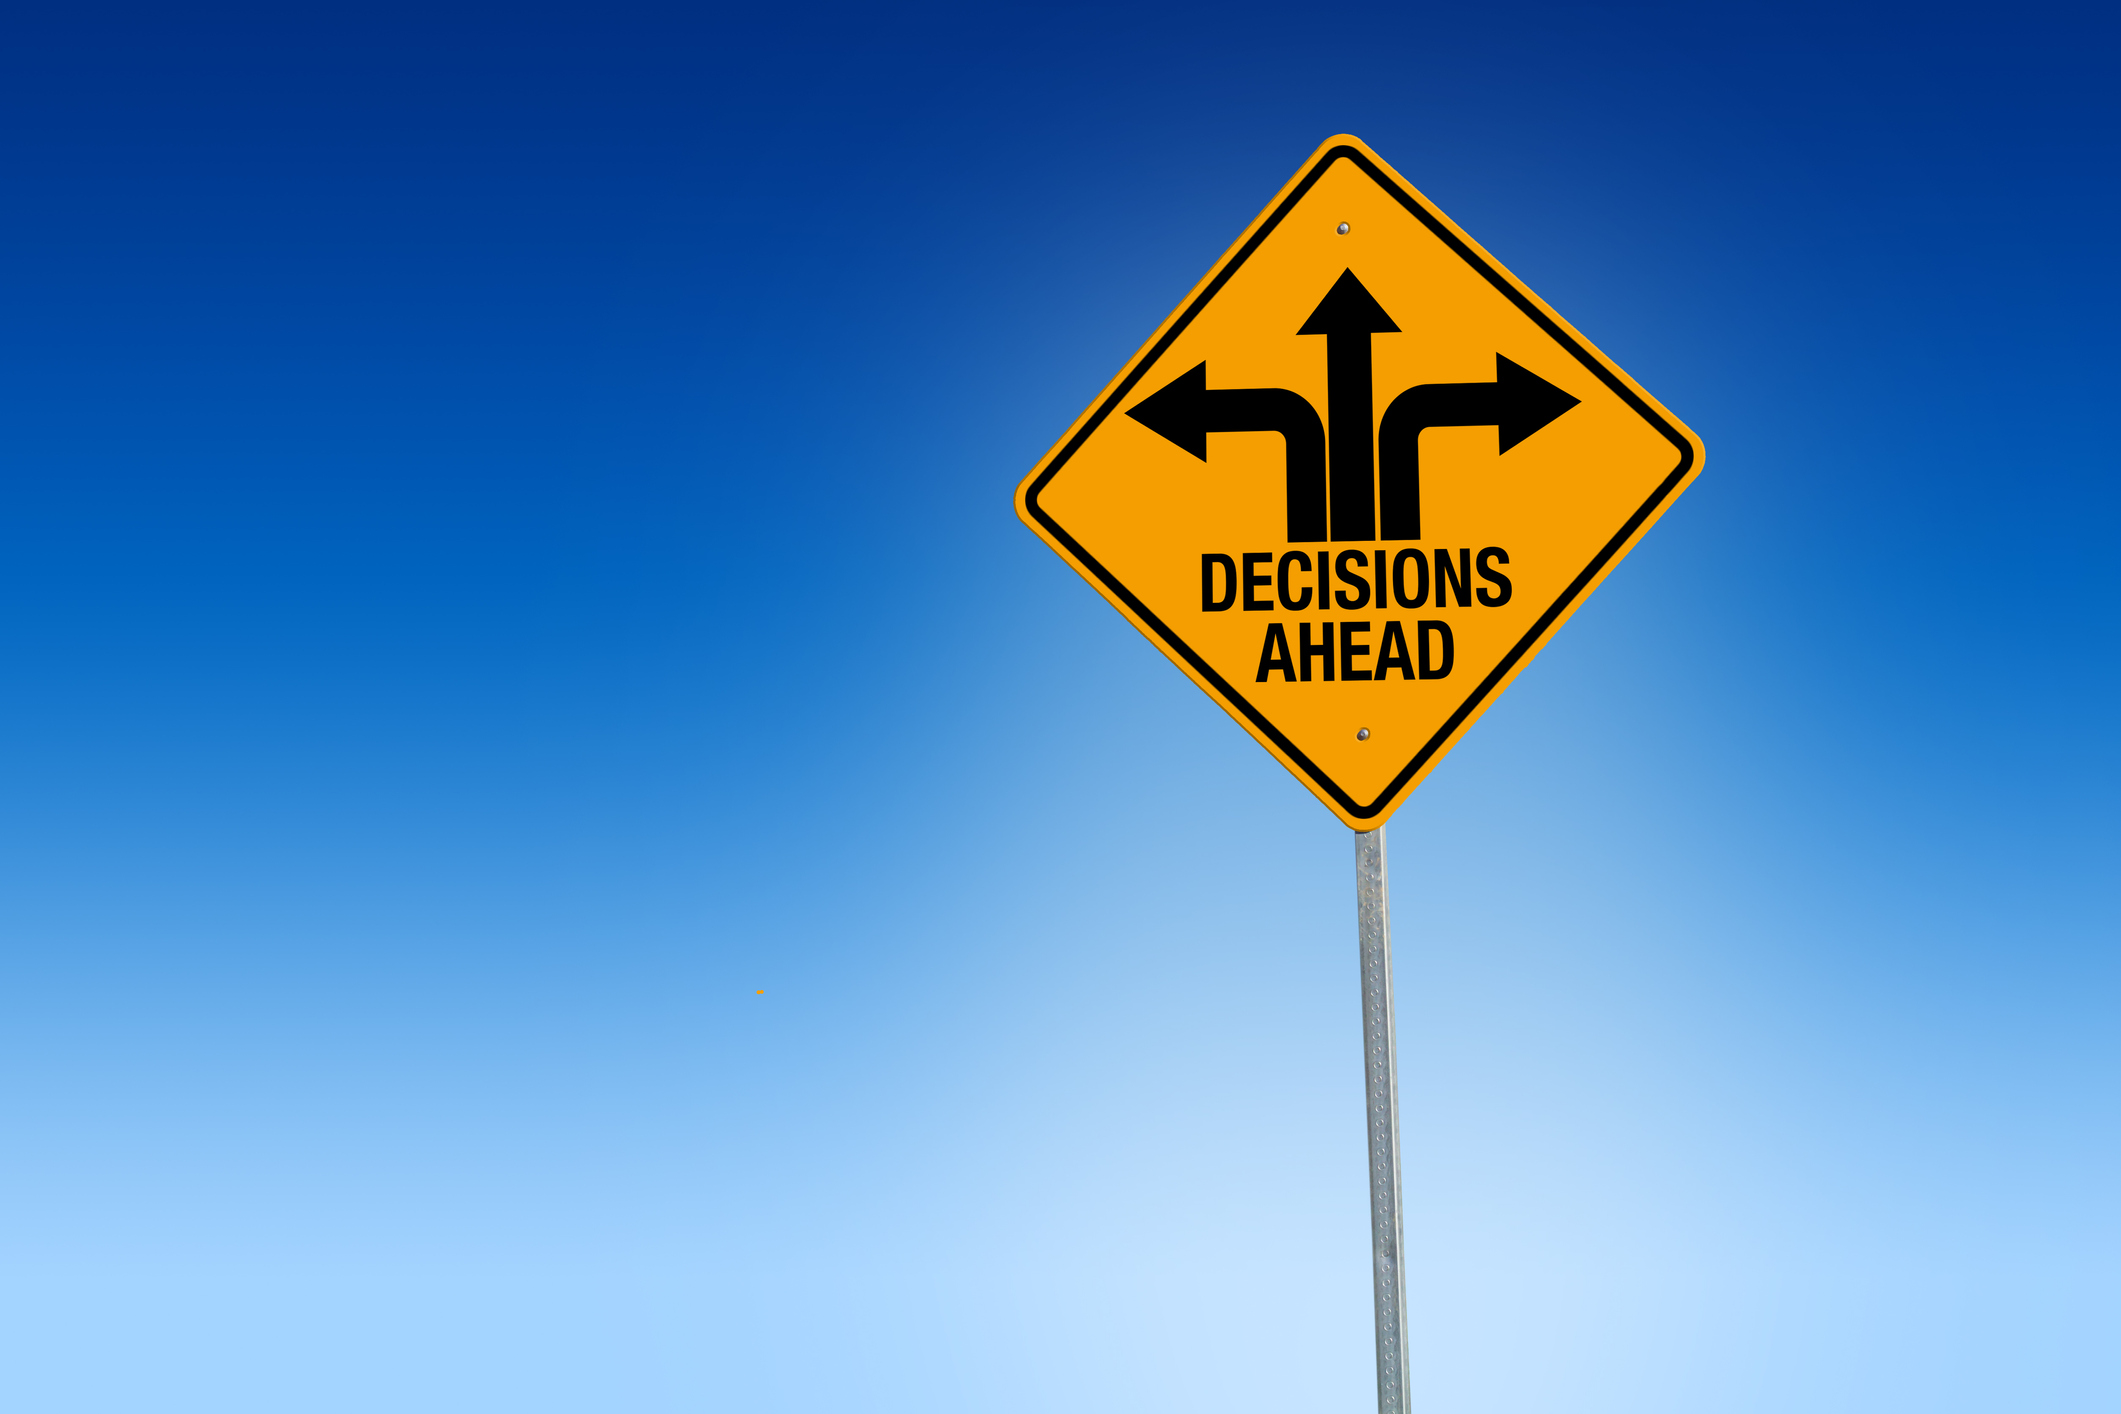 5 Ways to Move Customers Into the Decision Stage